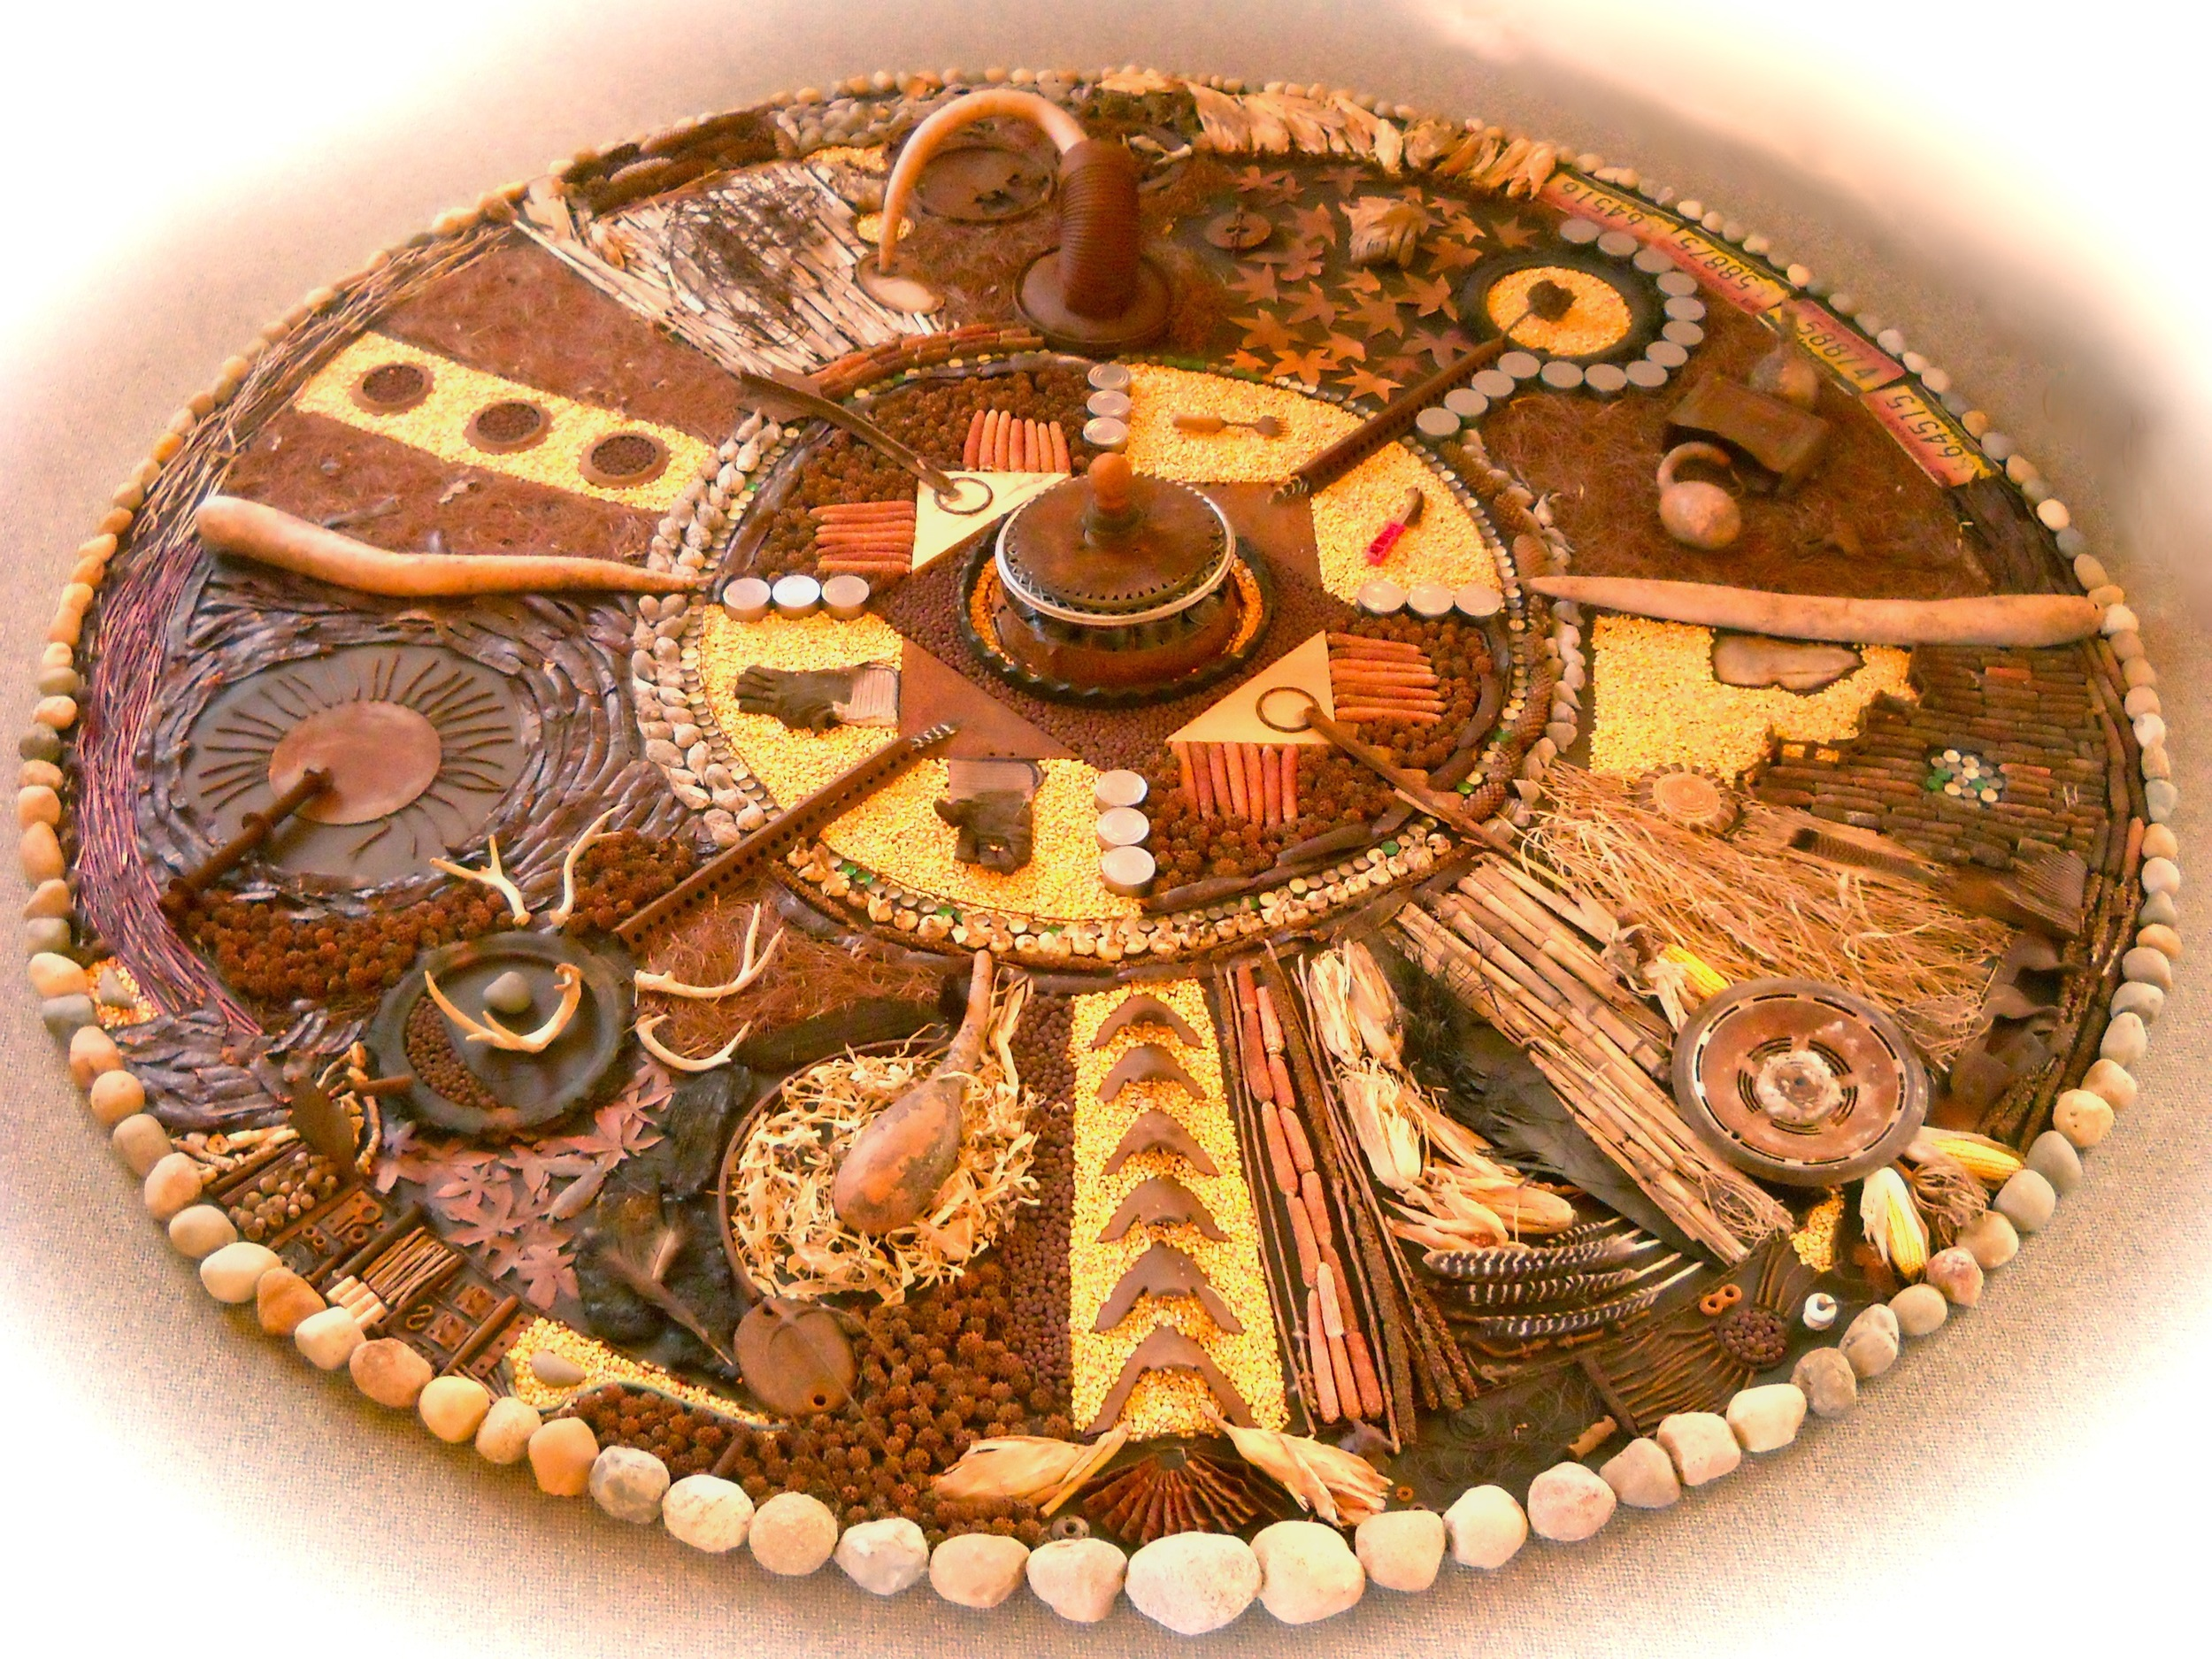 """In Harmony with Nature"" mandala created from natural and found materials at Prairie Arts Council's Lilian Fendig Gallery, Rensselaer, IN."